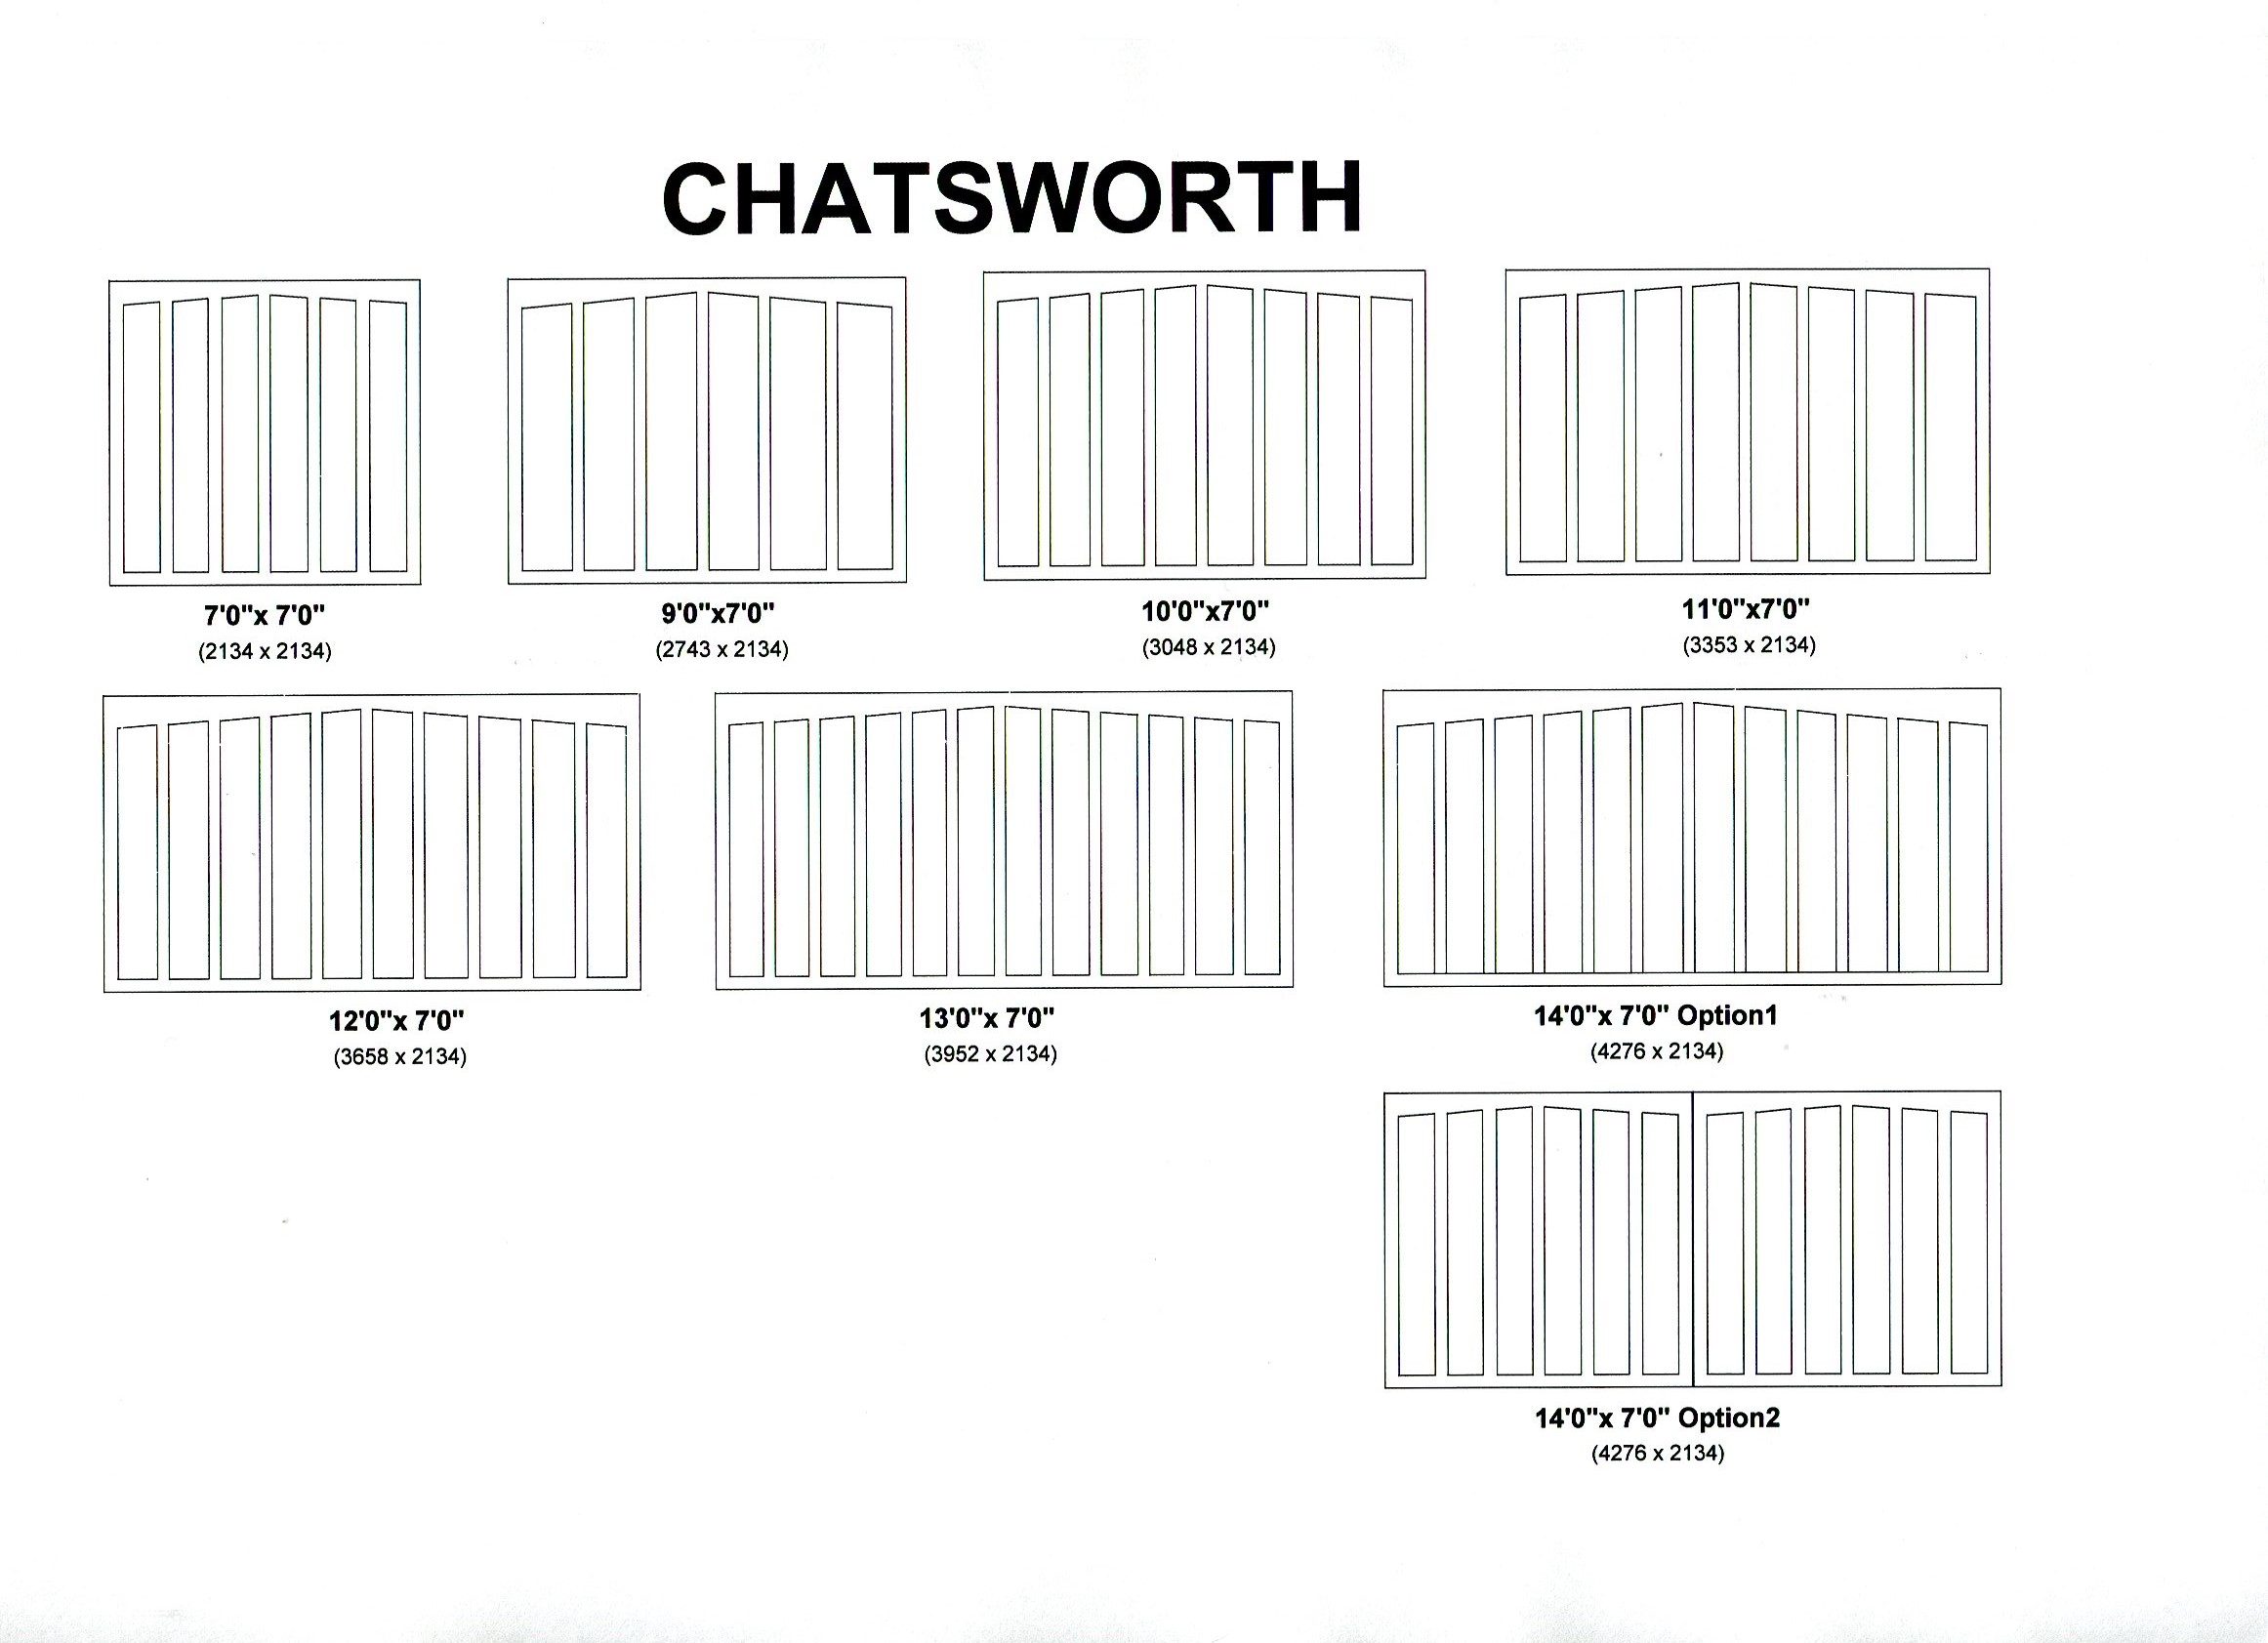 Cedar Door Chatsworth design options